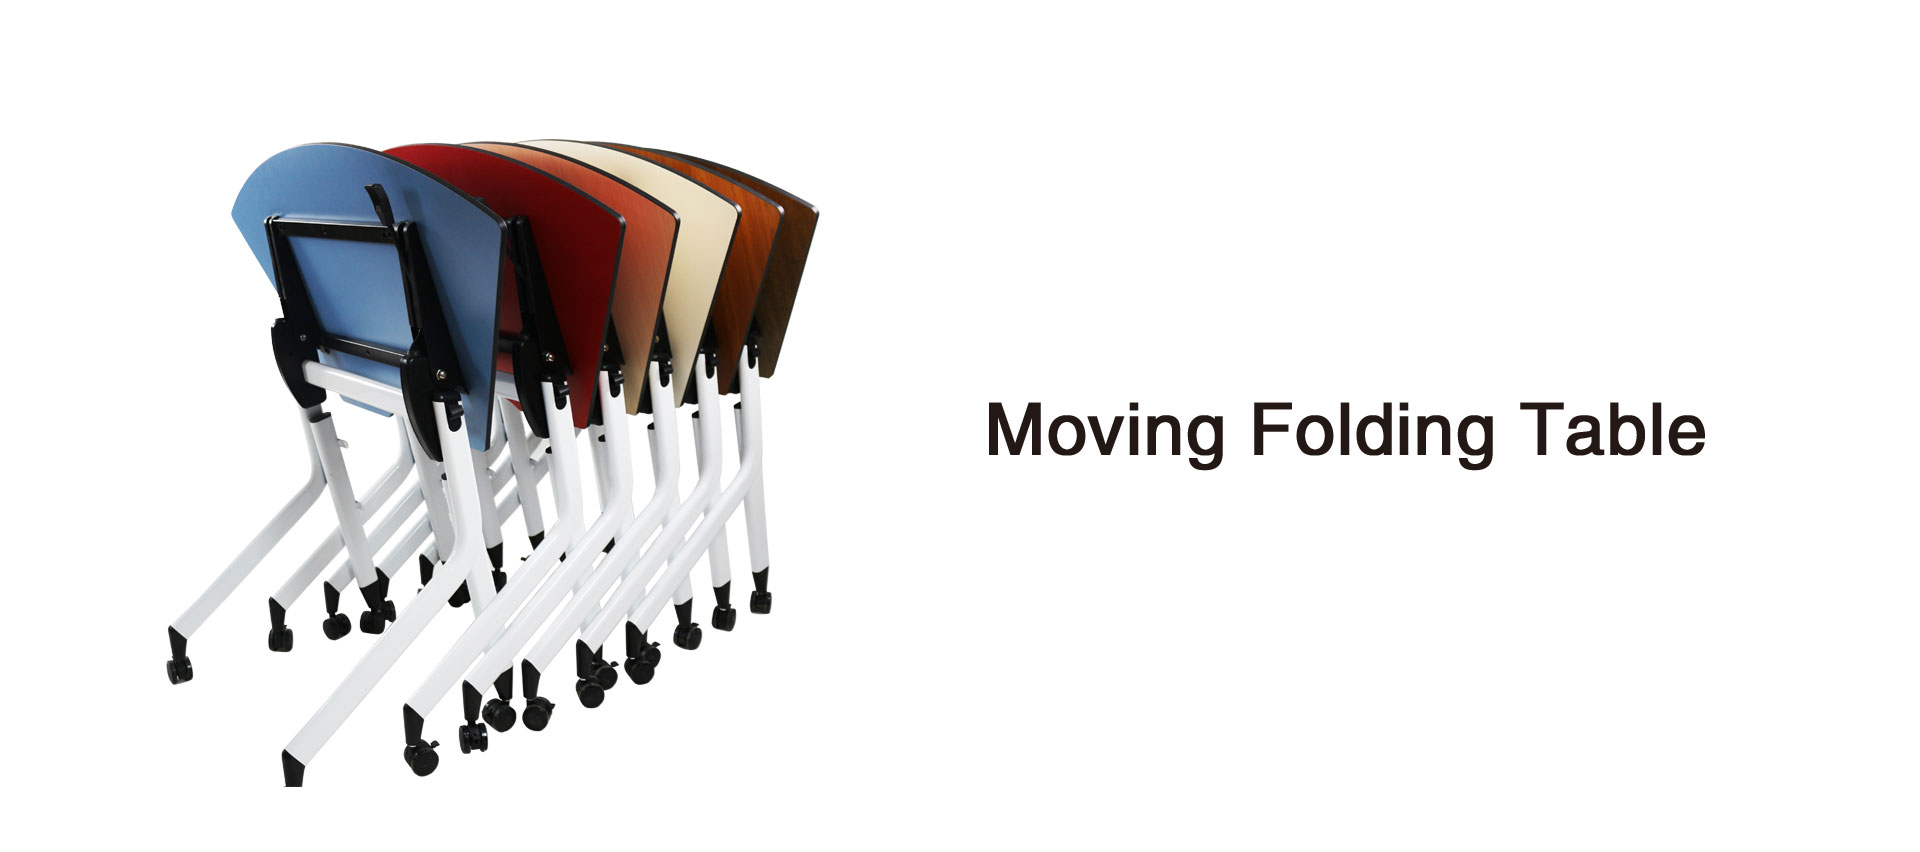 Moving folding table